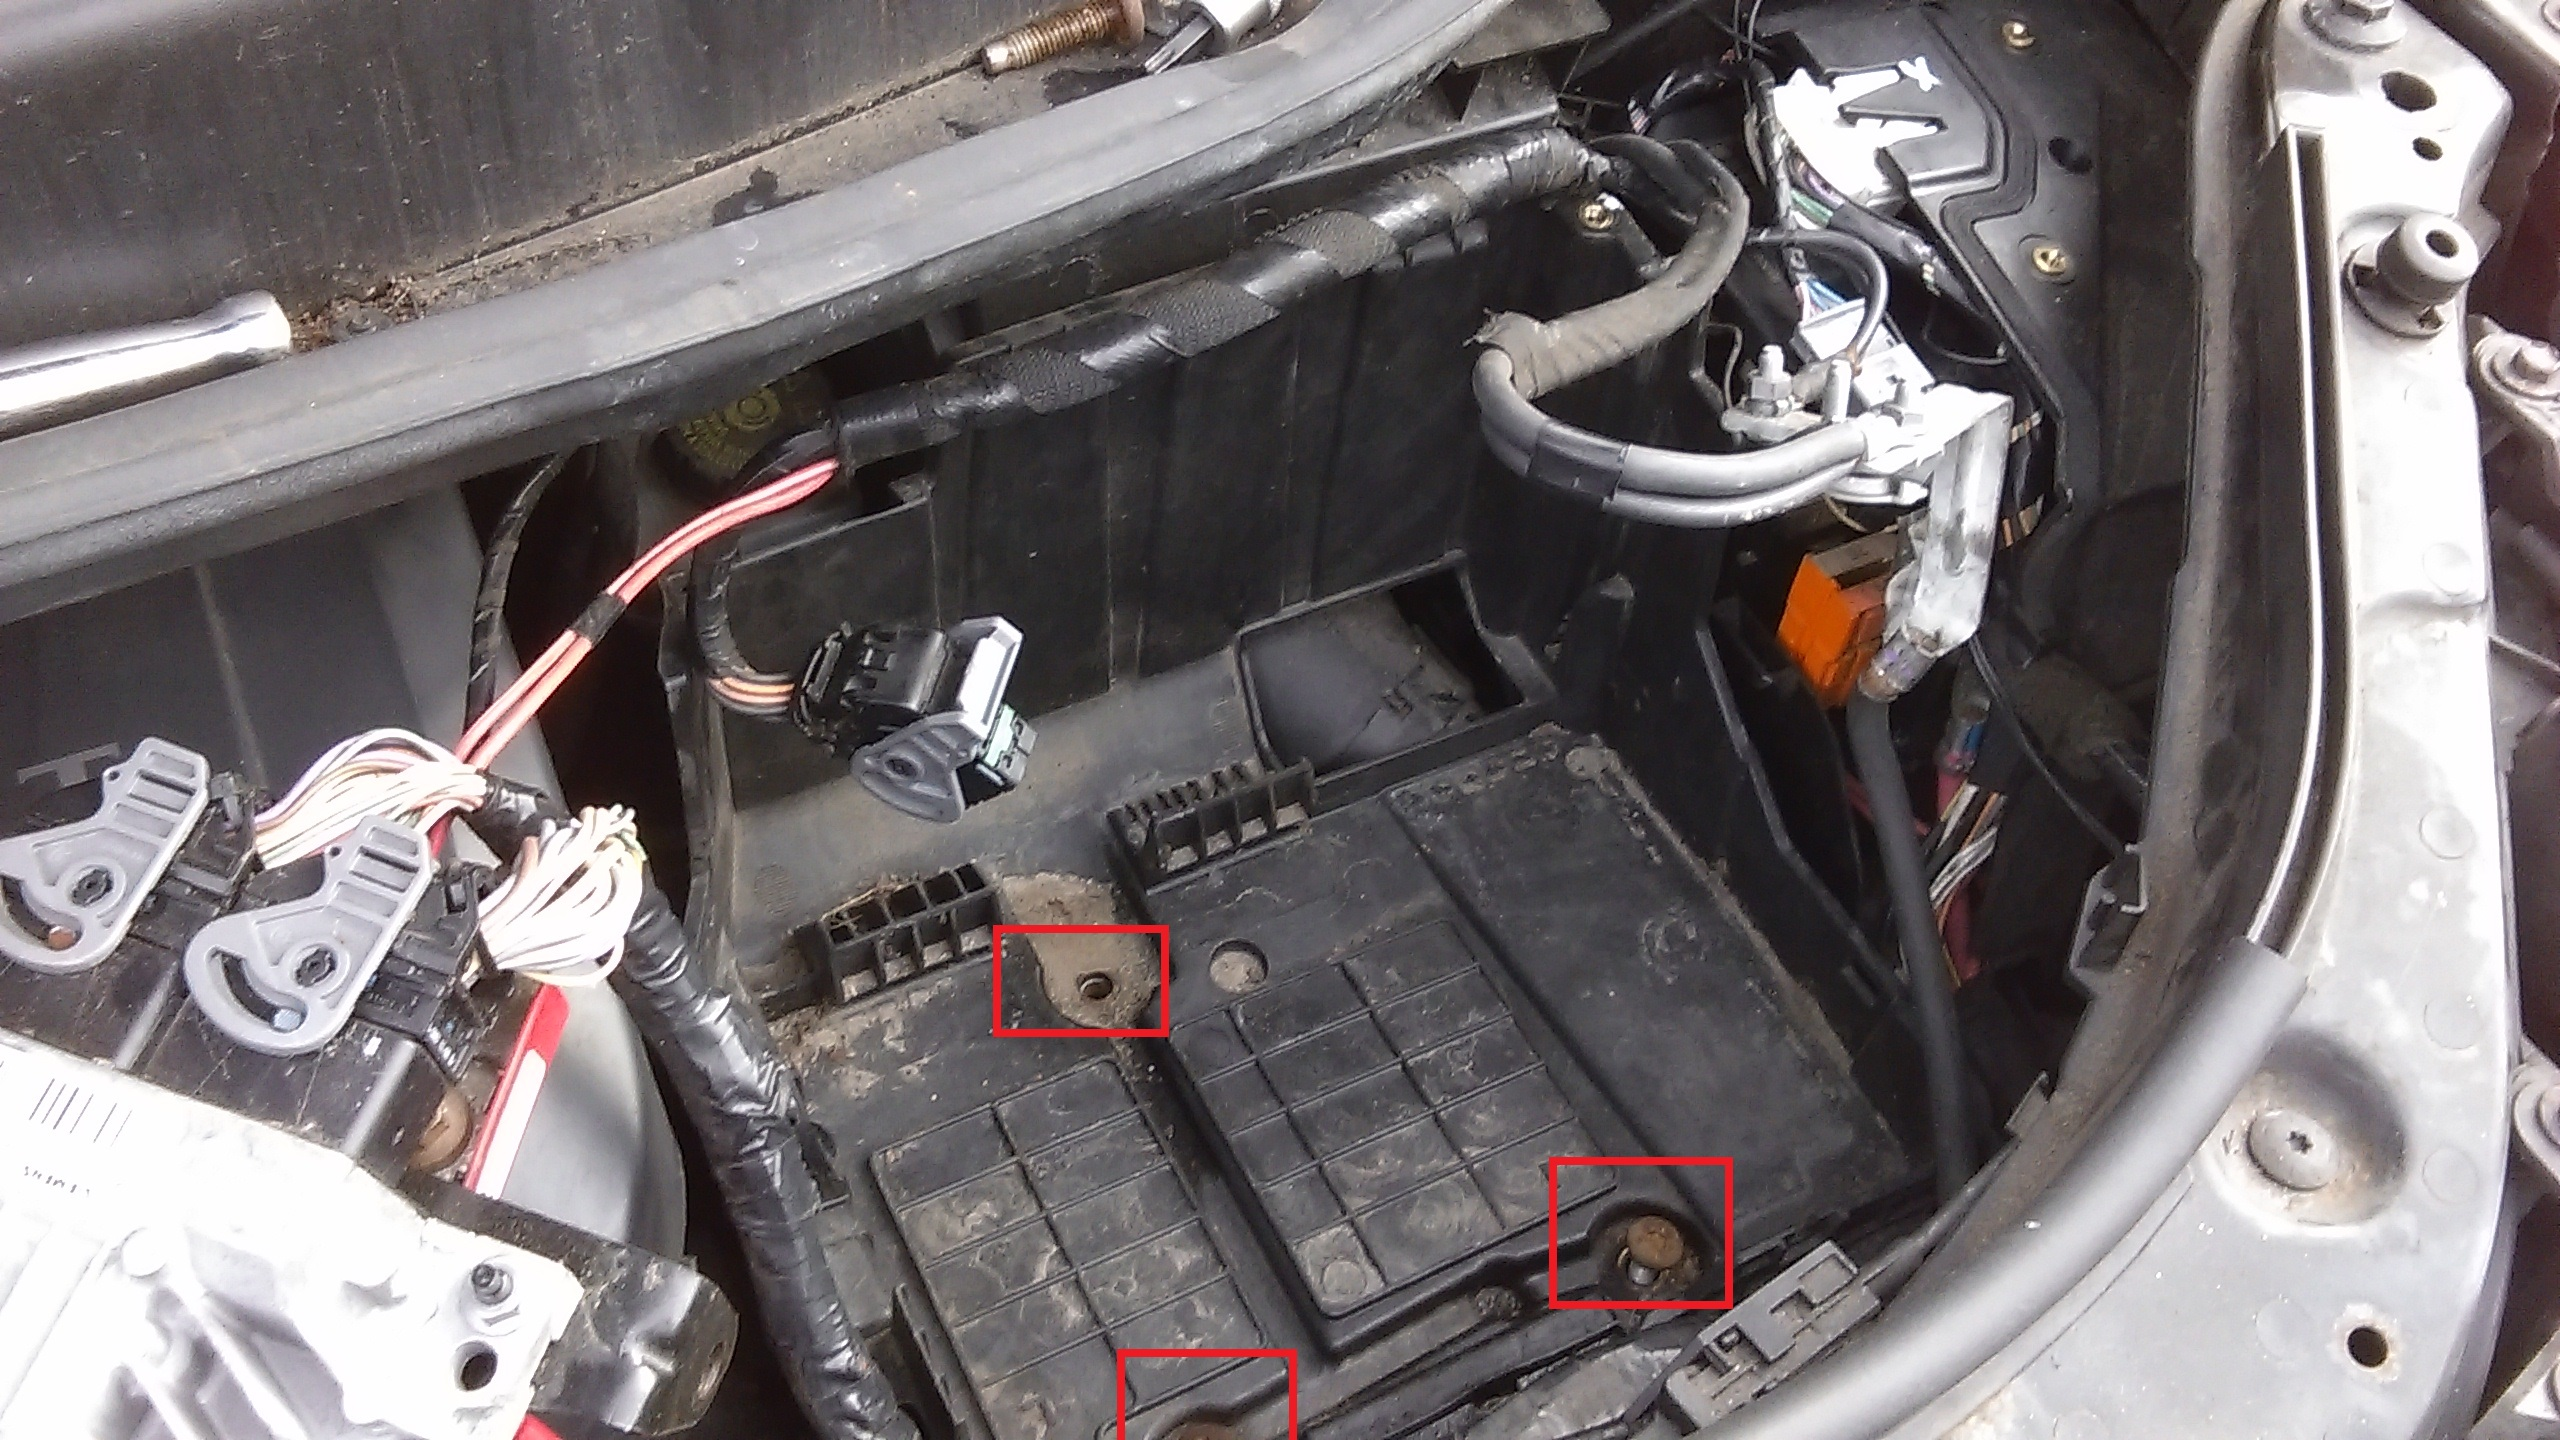 renault grand scenic engine fusebox access javalins\u0027s blog Renault Scenic 2 Fuse Box Removal